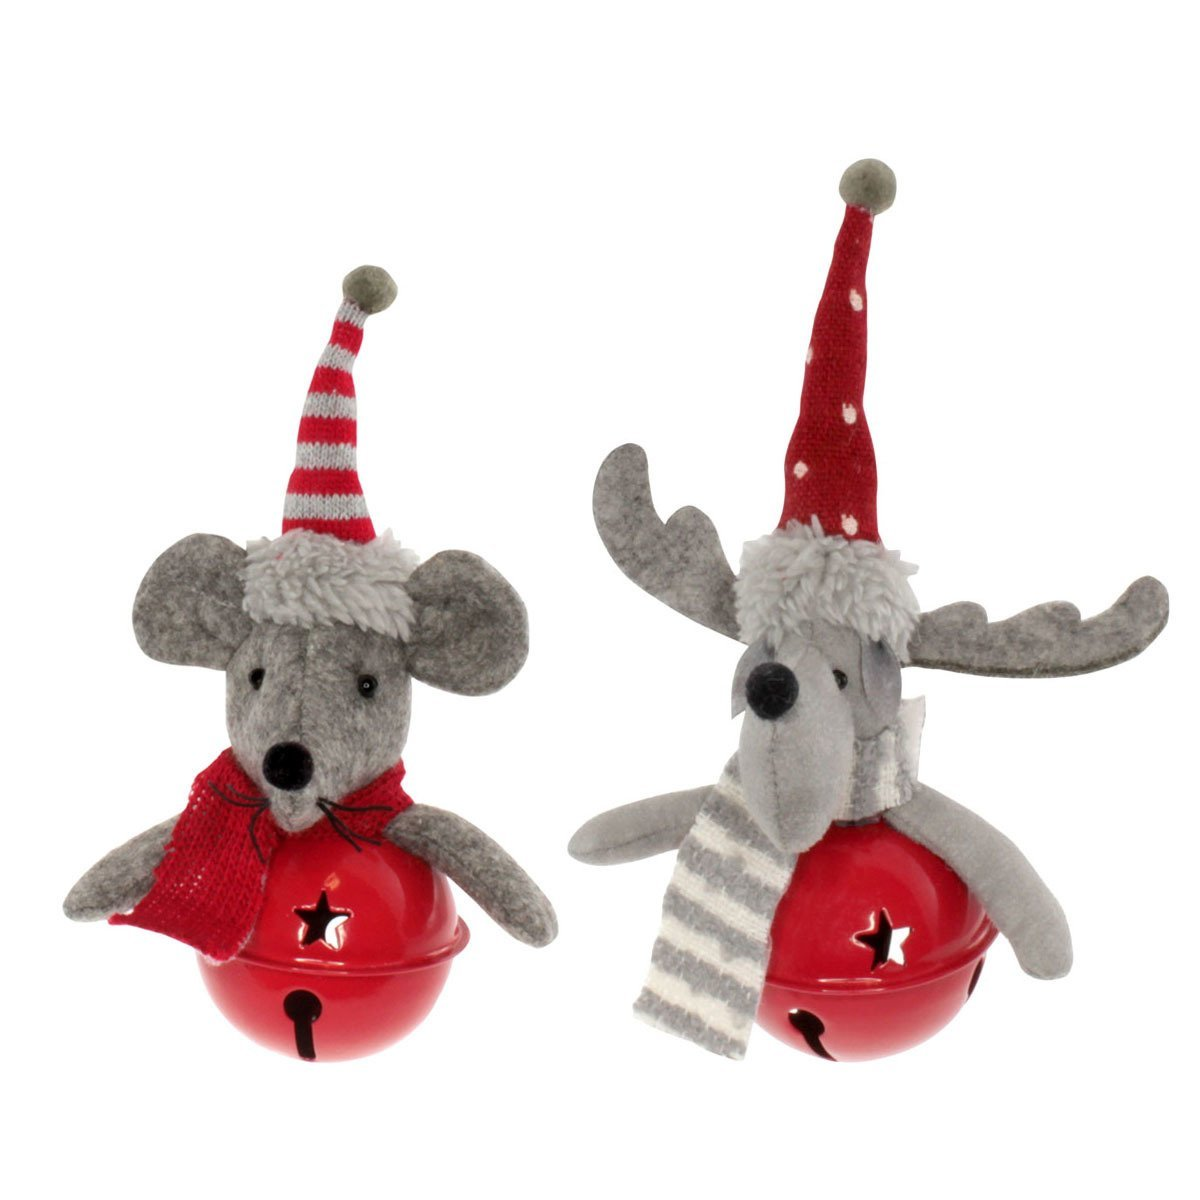 delightdecor christmas decorations delight decor moose mice bell - Christmas Mice Decorations